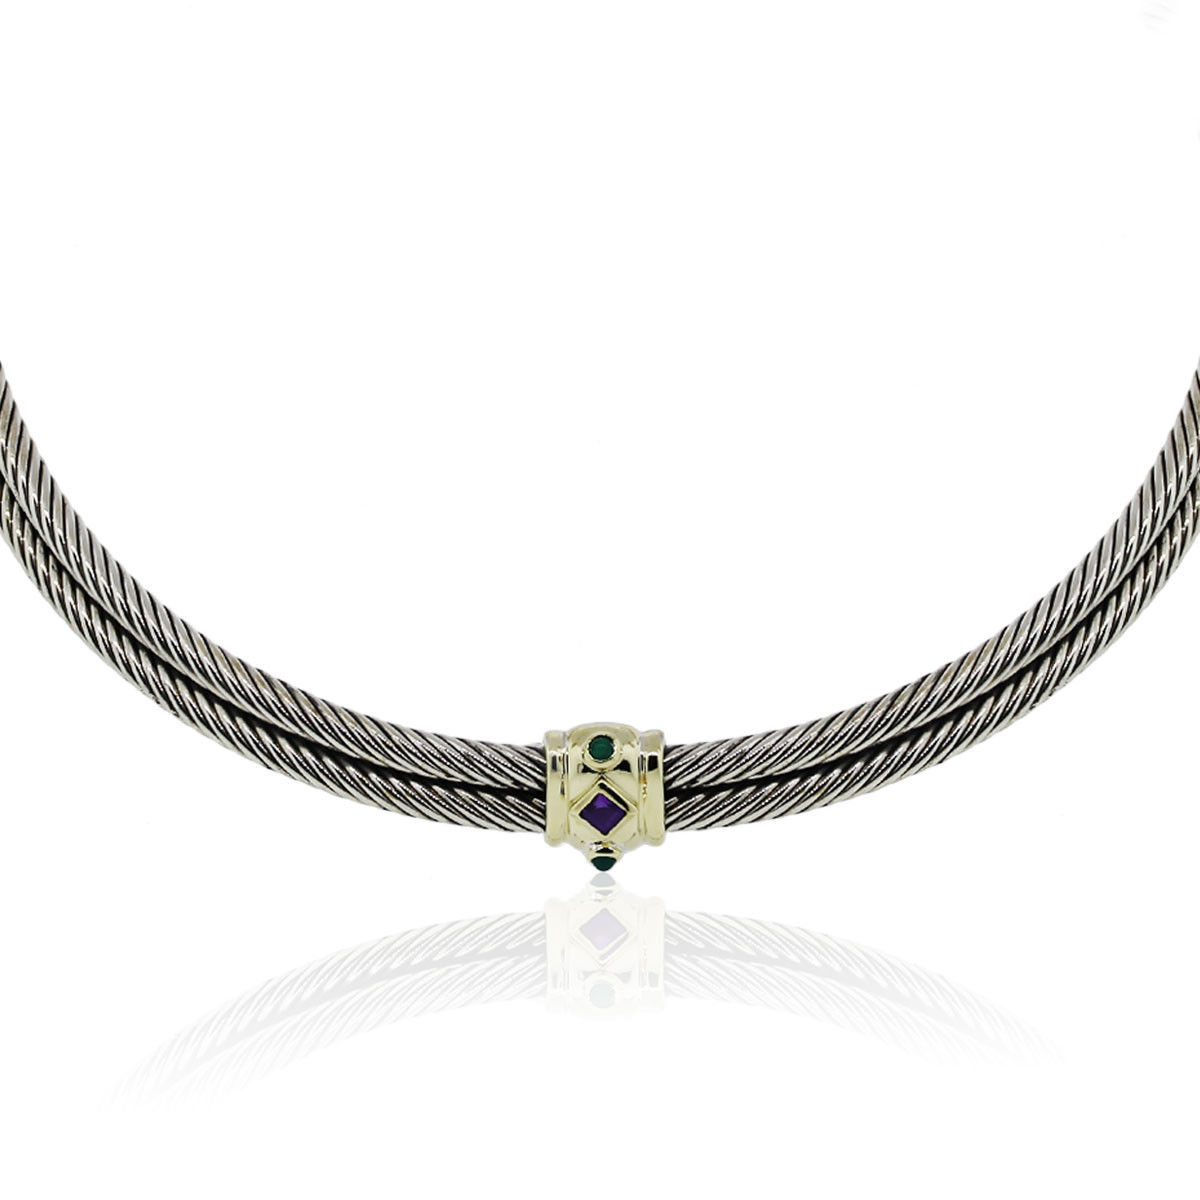 You are viewing this David Yurman Two Tone Renaissance Cable Choker Necklace!